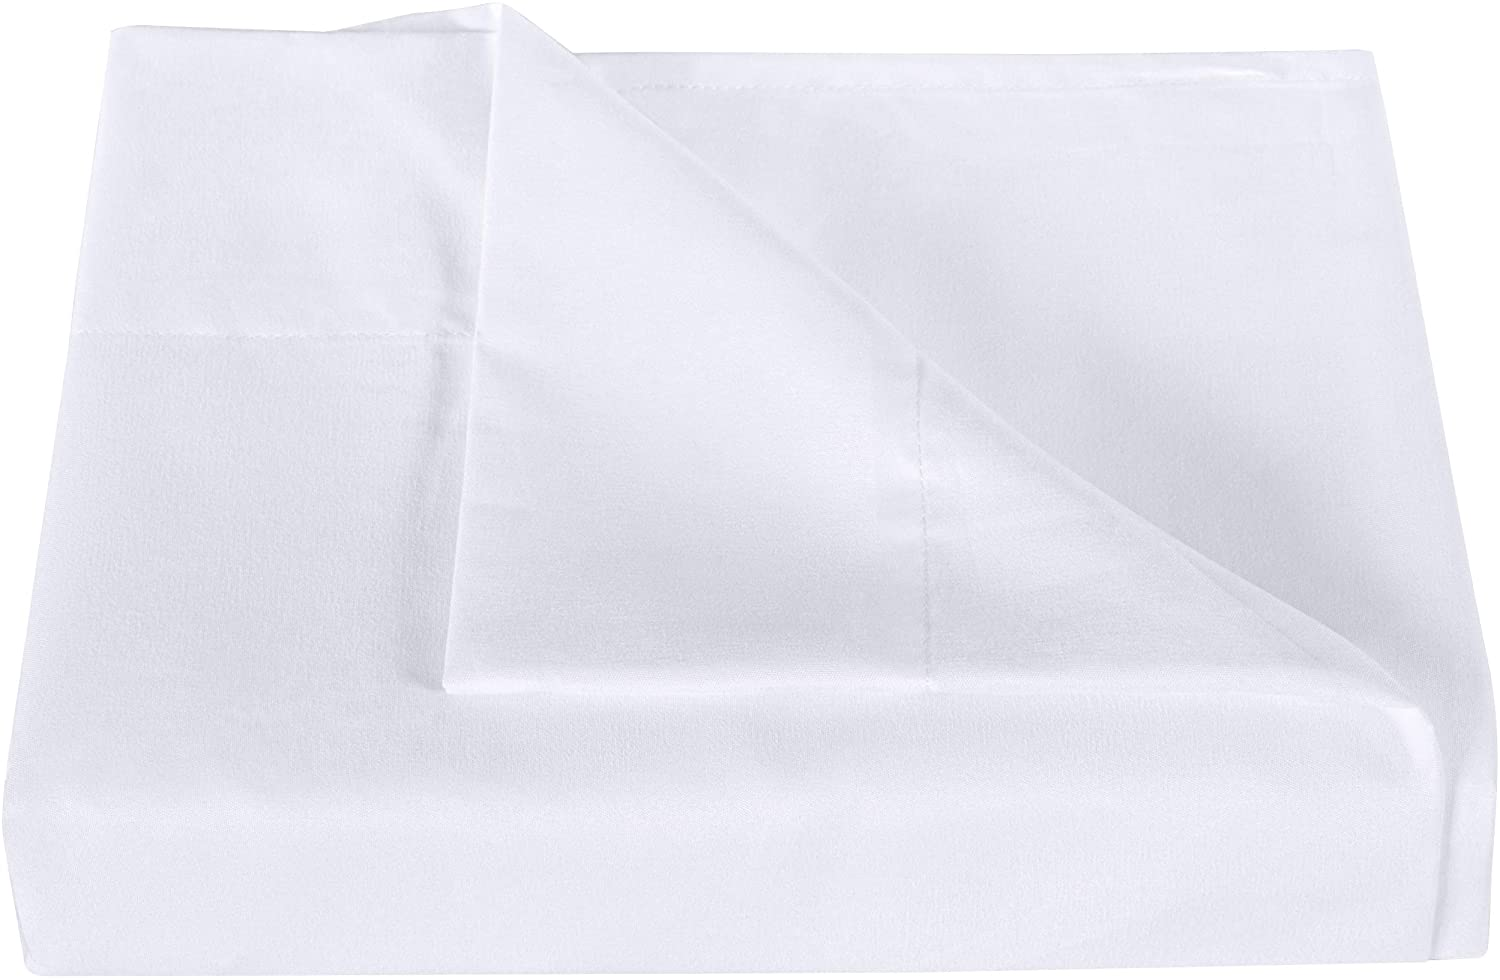 NTBAY MICROFIBER TWIN BEDDING FLAT SHEET ULTRA SOFT AND WRINKLE FADE STAIN RESISTANT TOP SHEET WHITE